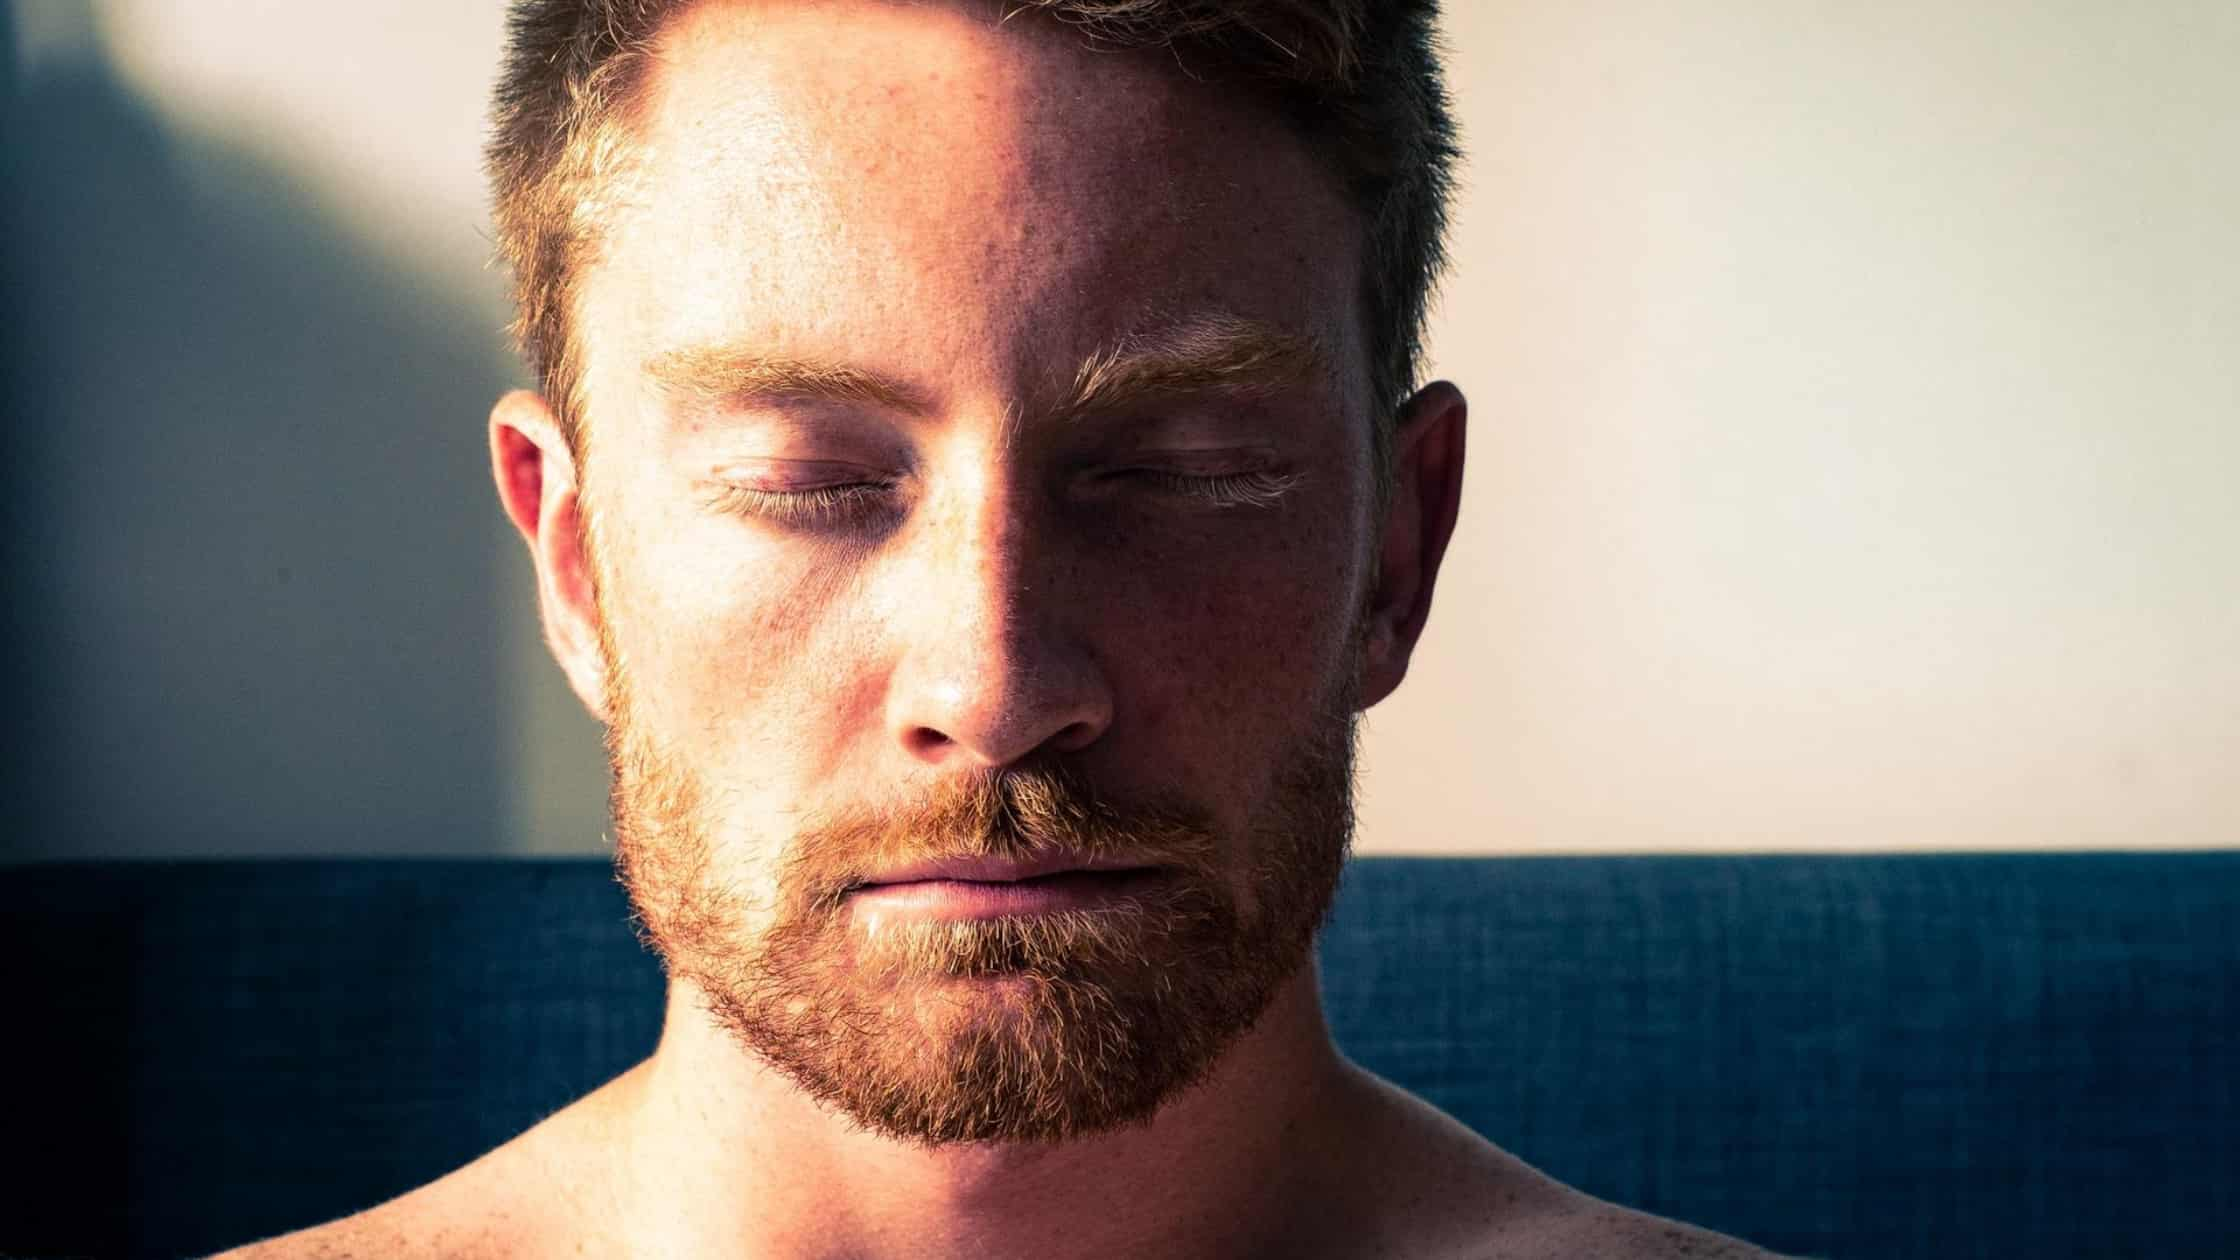 What Is Mindful Breathing & How To Practice It 5 Minutes